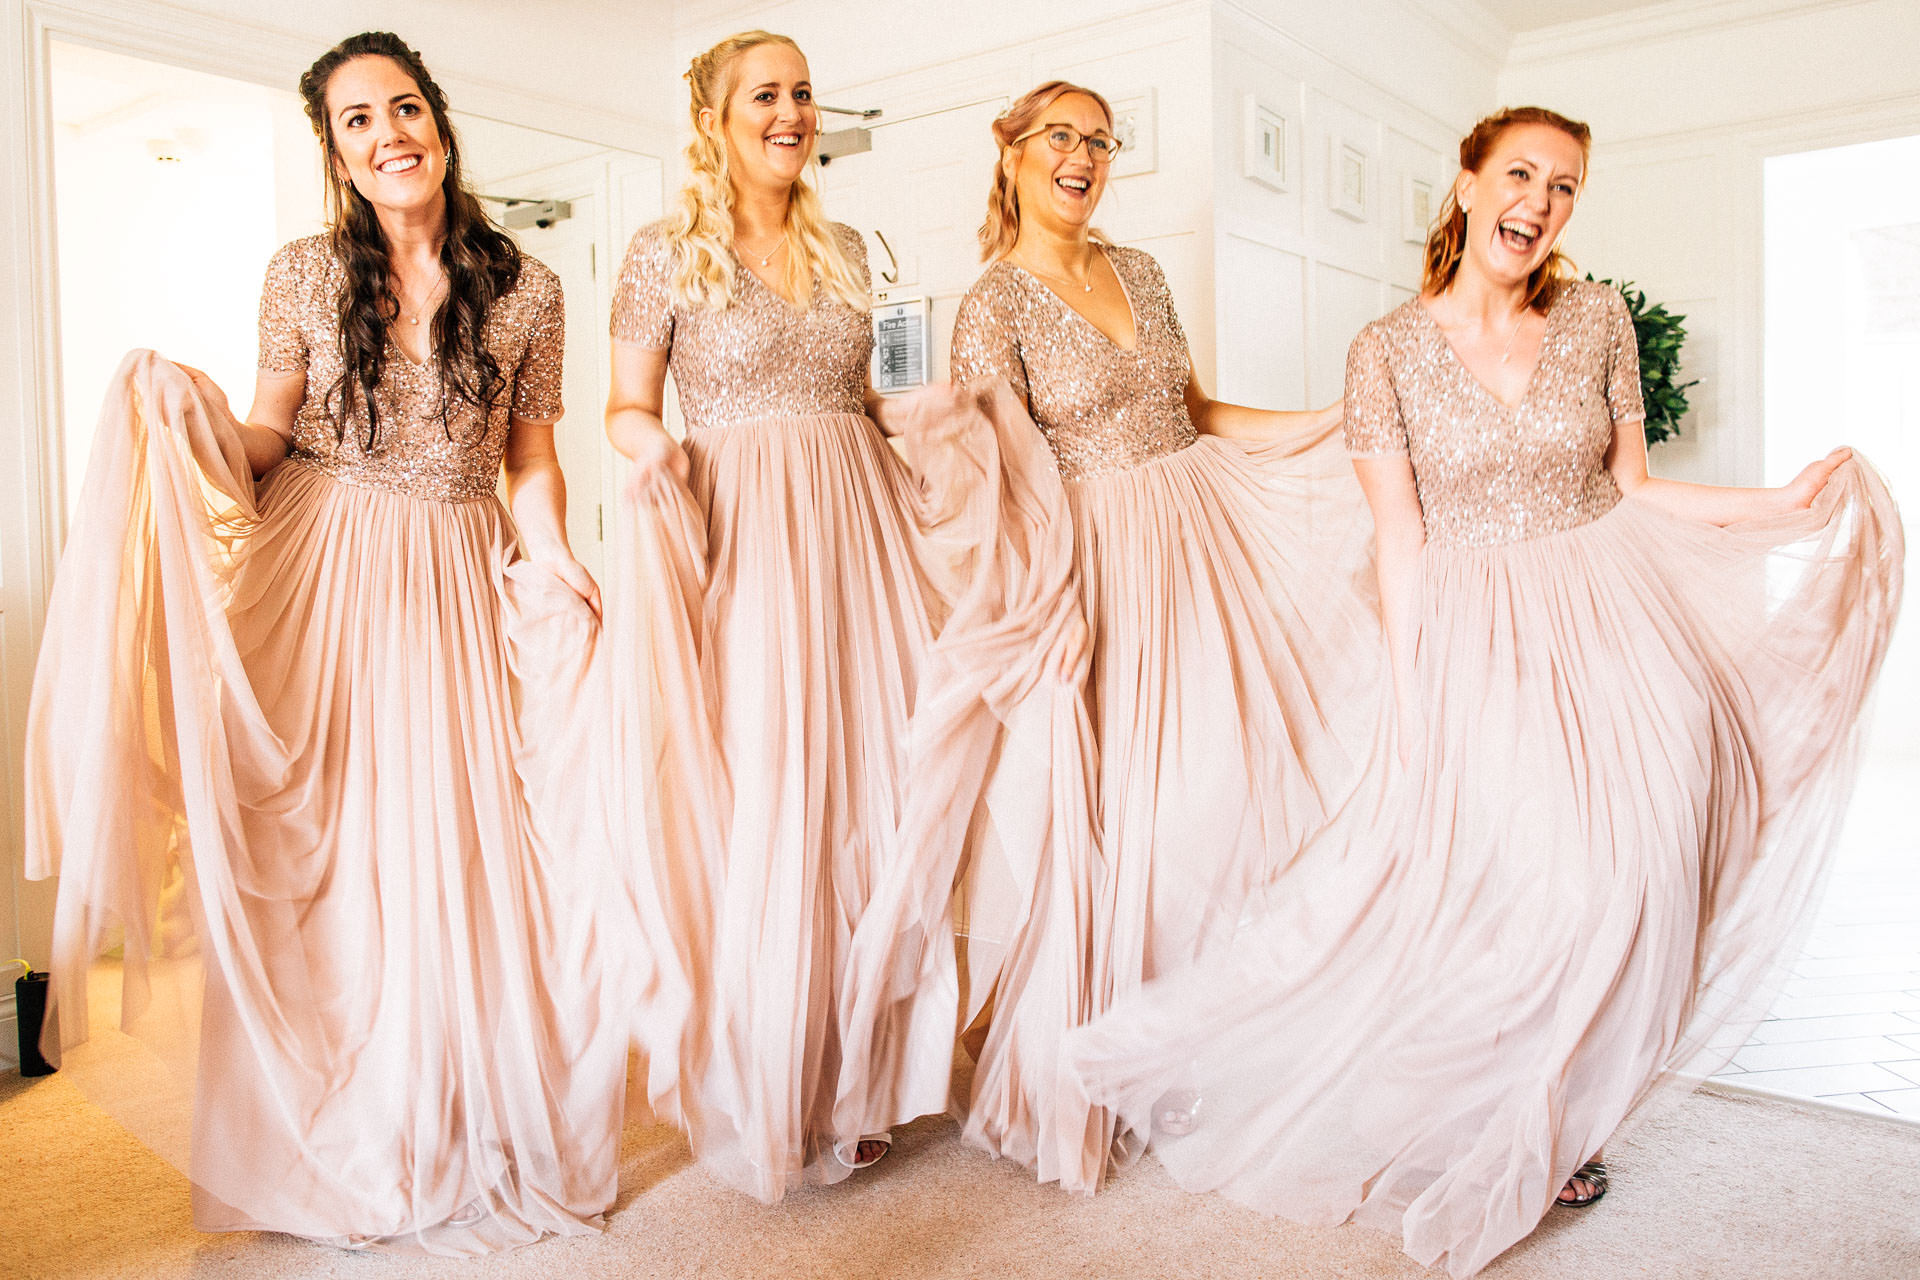 The Wild Boar Wedding Photography - EM - bridemaids swishing dresses